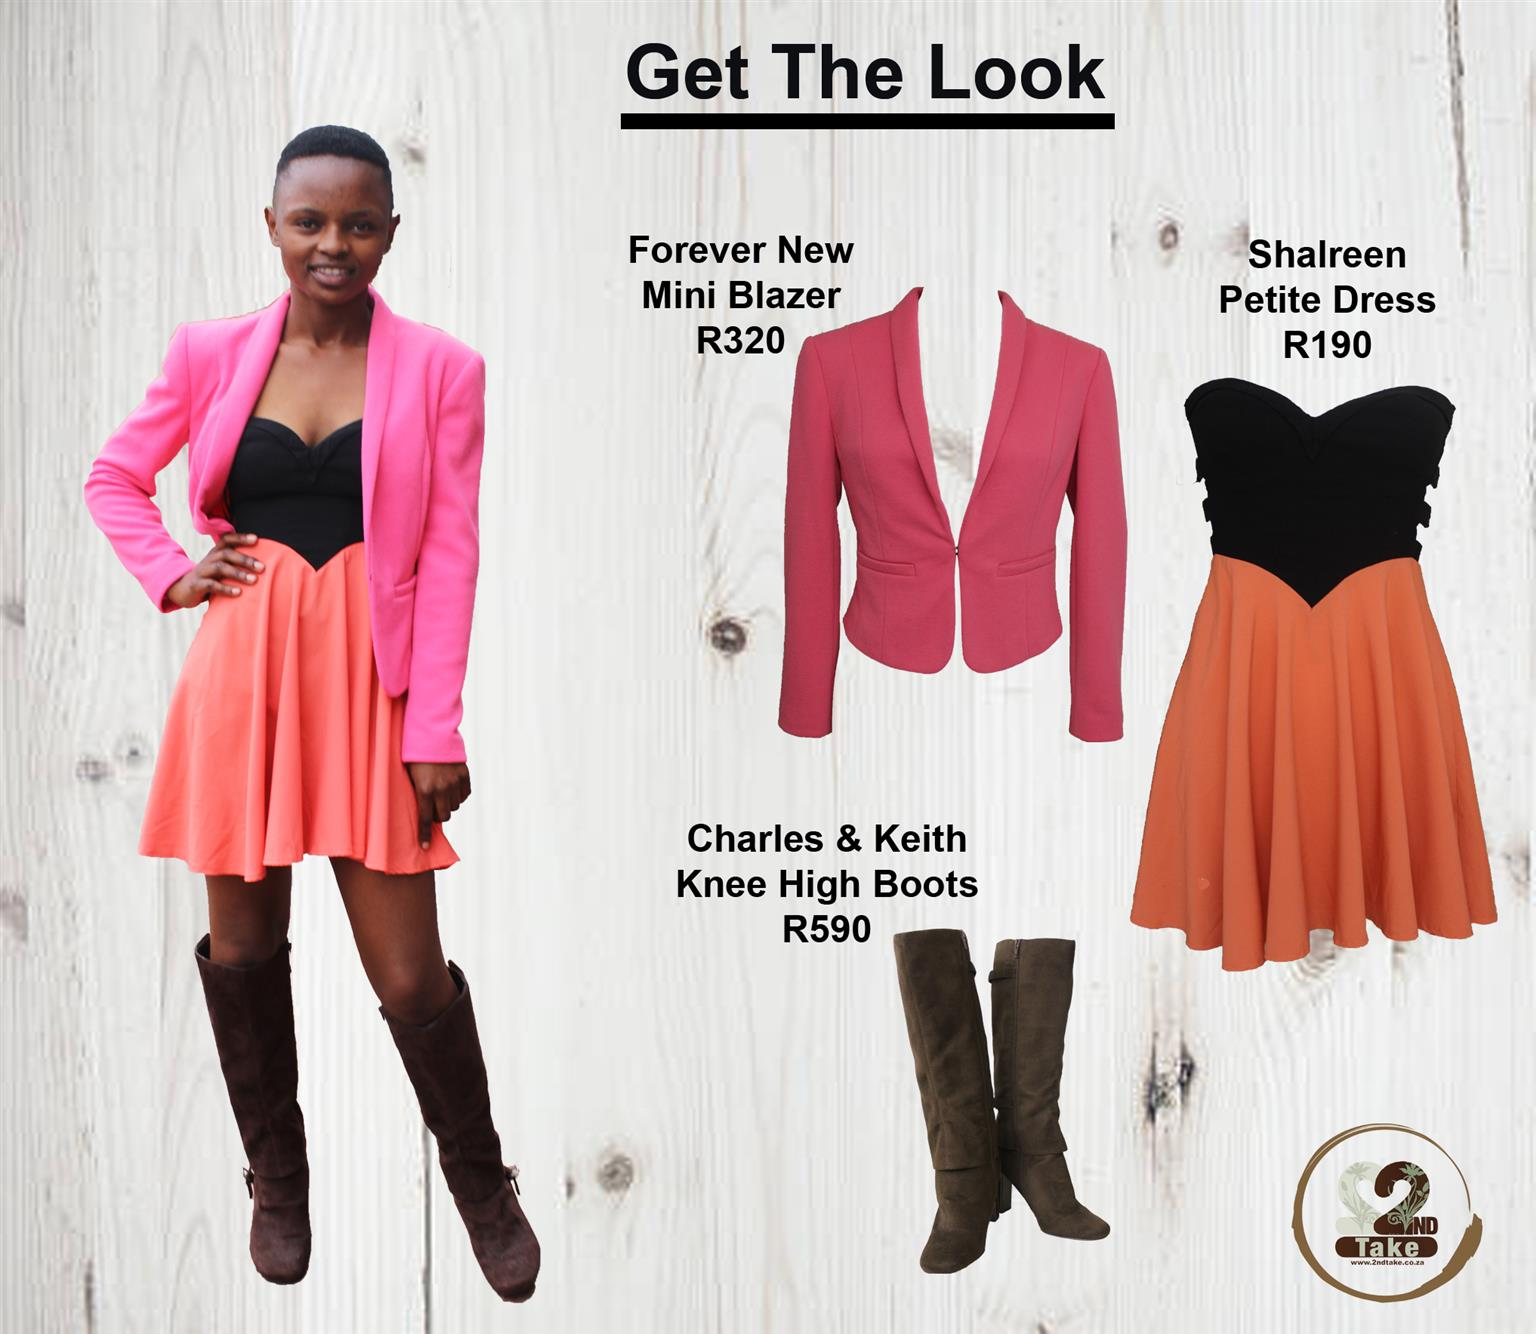 knee high boots with a colour-blocked, umpire-waist dress and a bright blazer available at 2nd Take